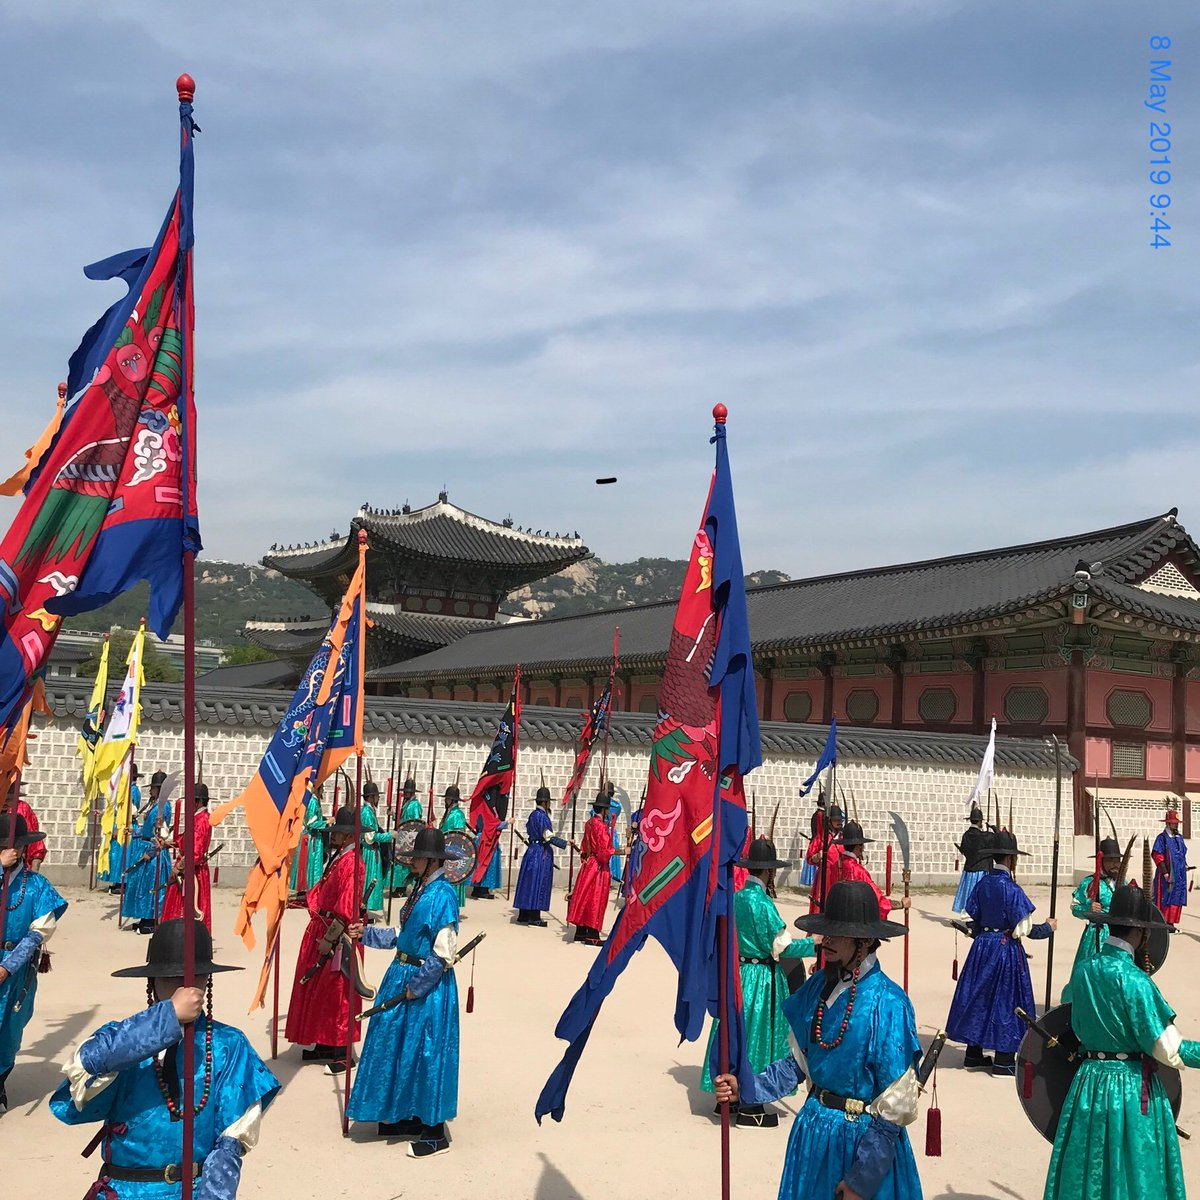 Guards training at Gyeongbokgung royal palace, the largest of five grand palaces in Seoul, built 1395